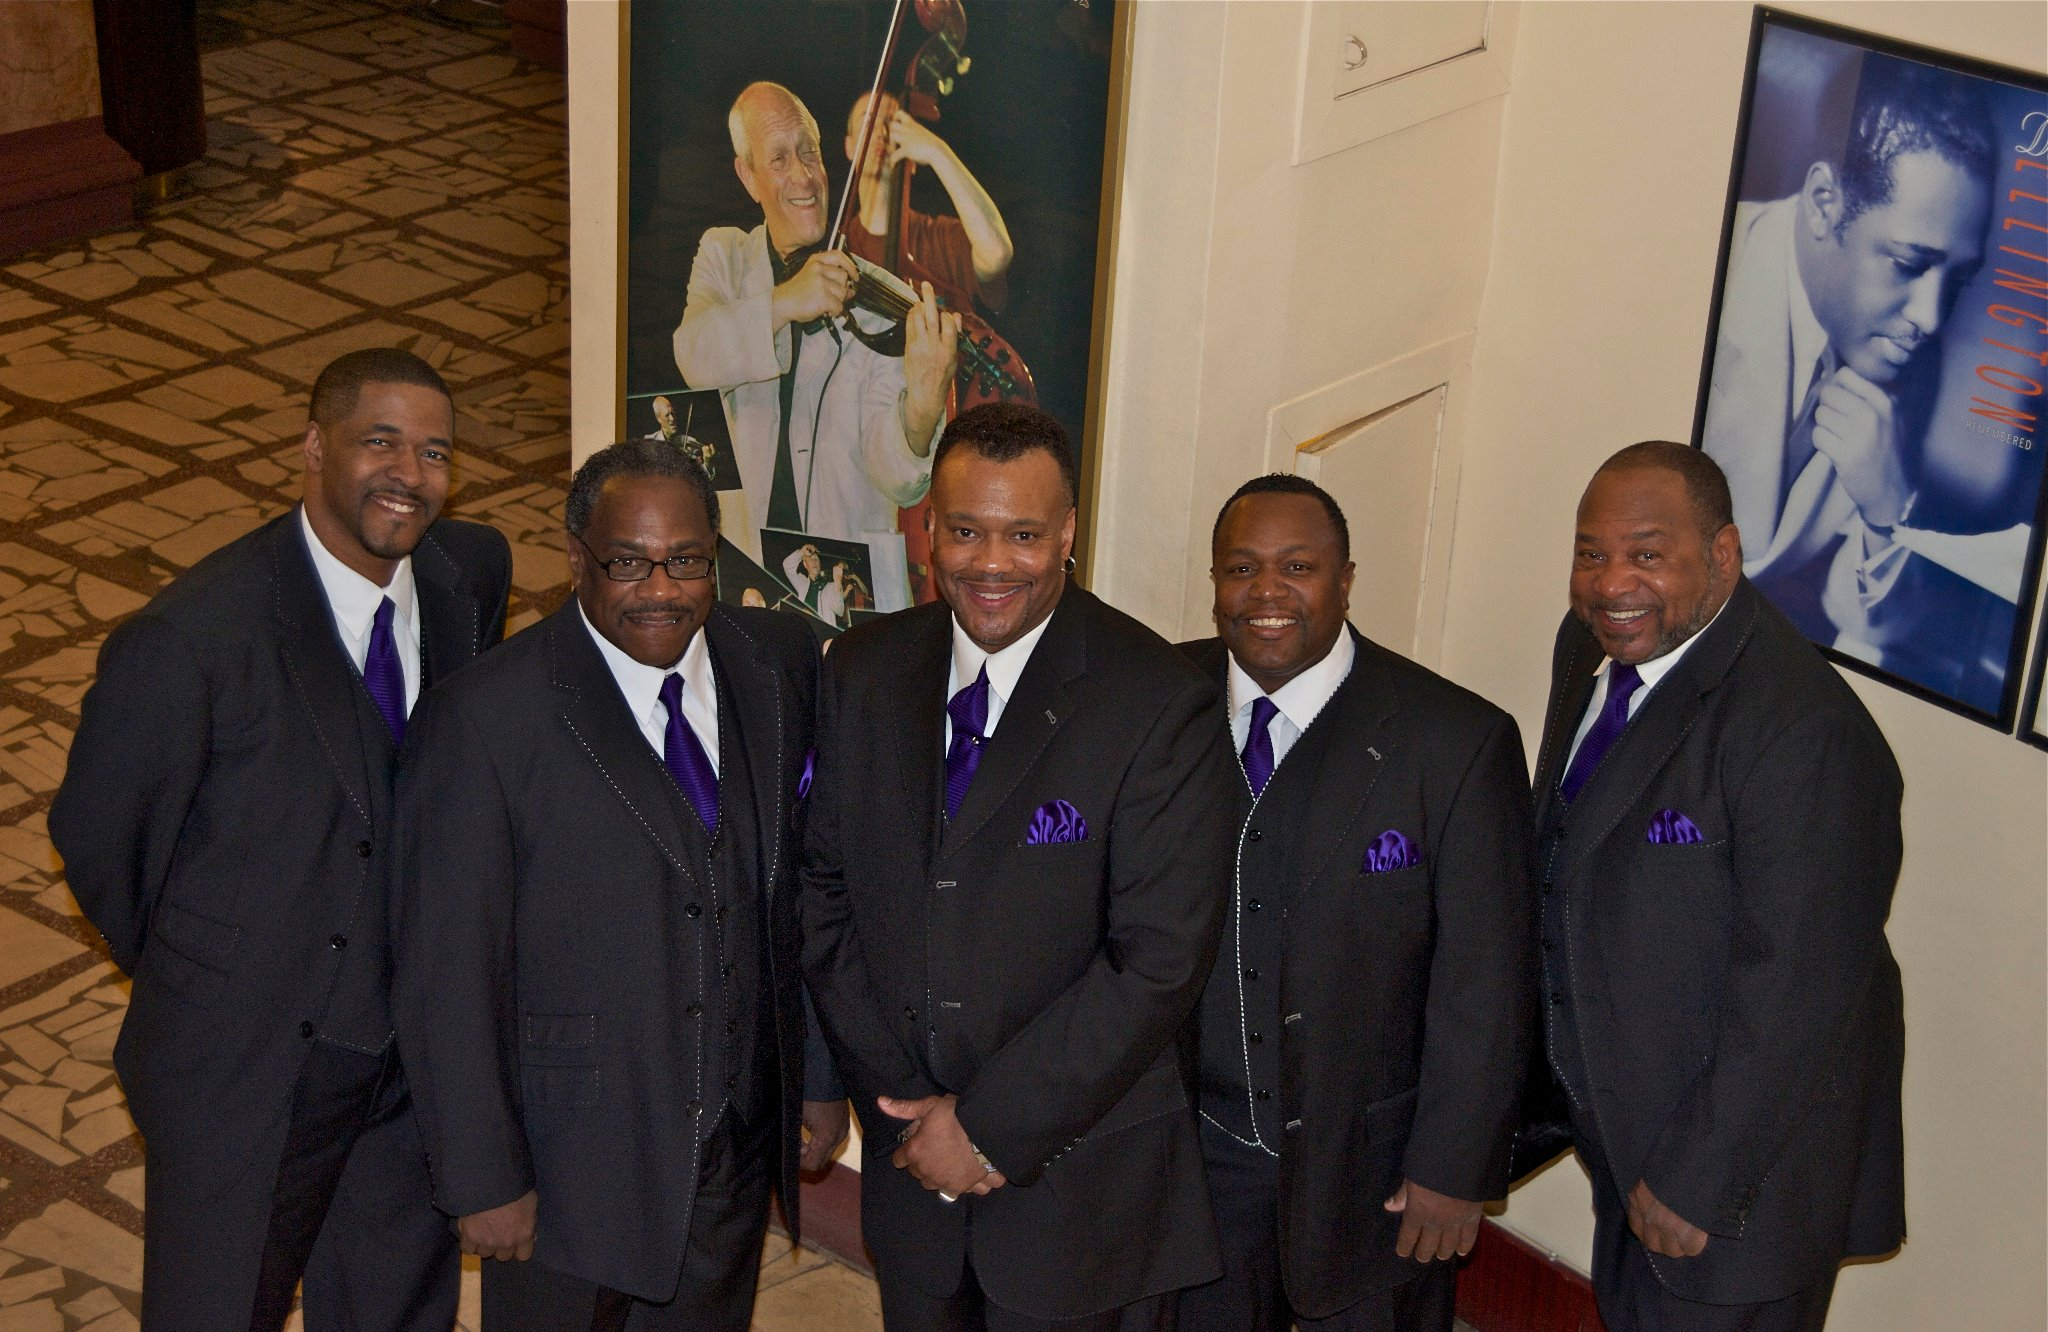 Northern Kentucky Brotherhood Singers